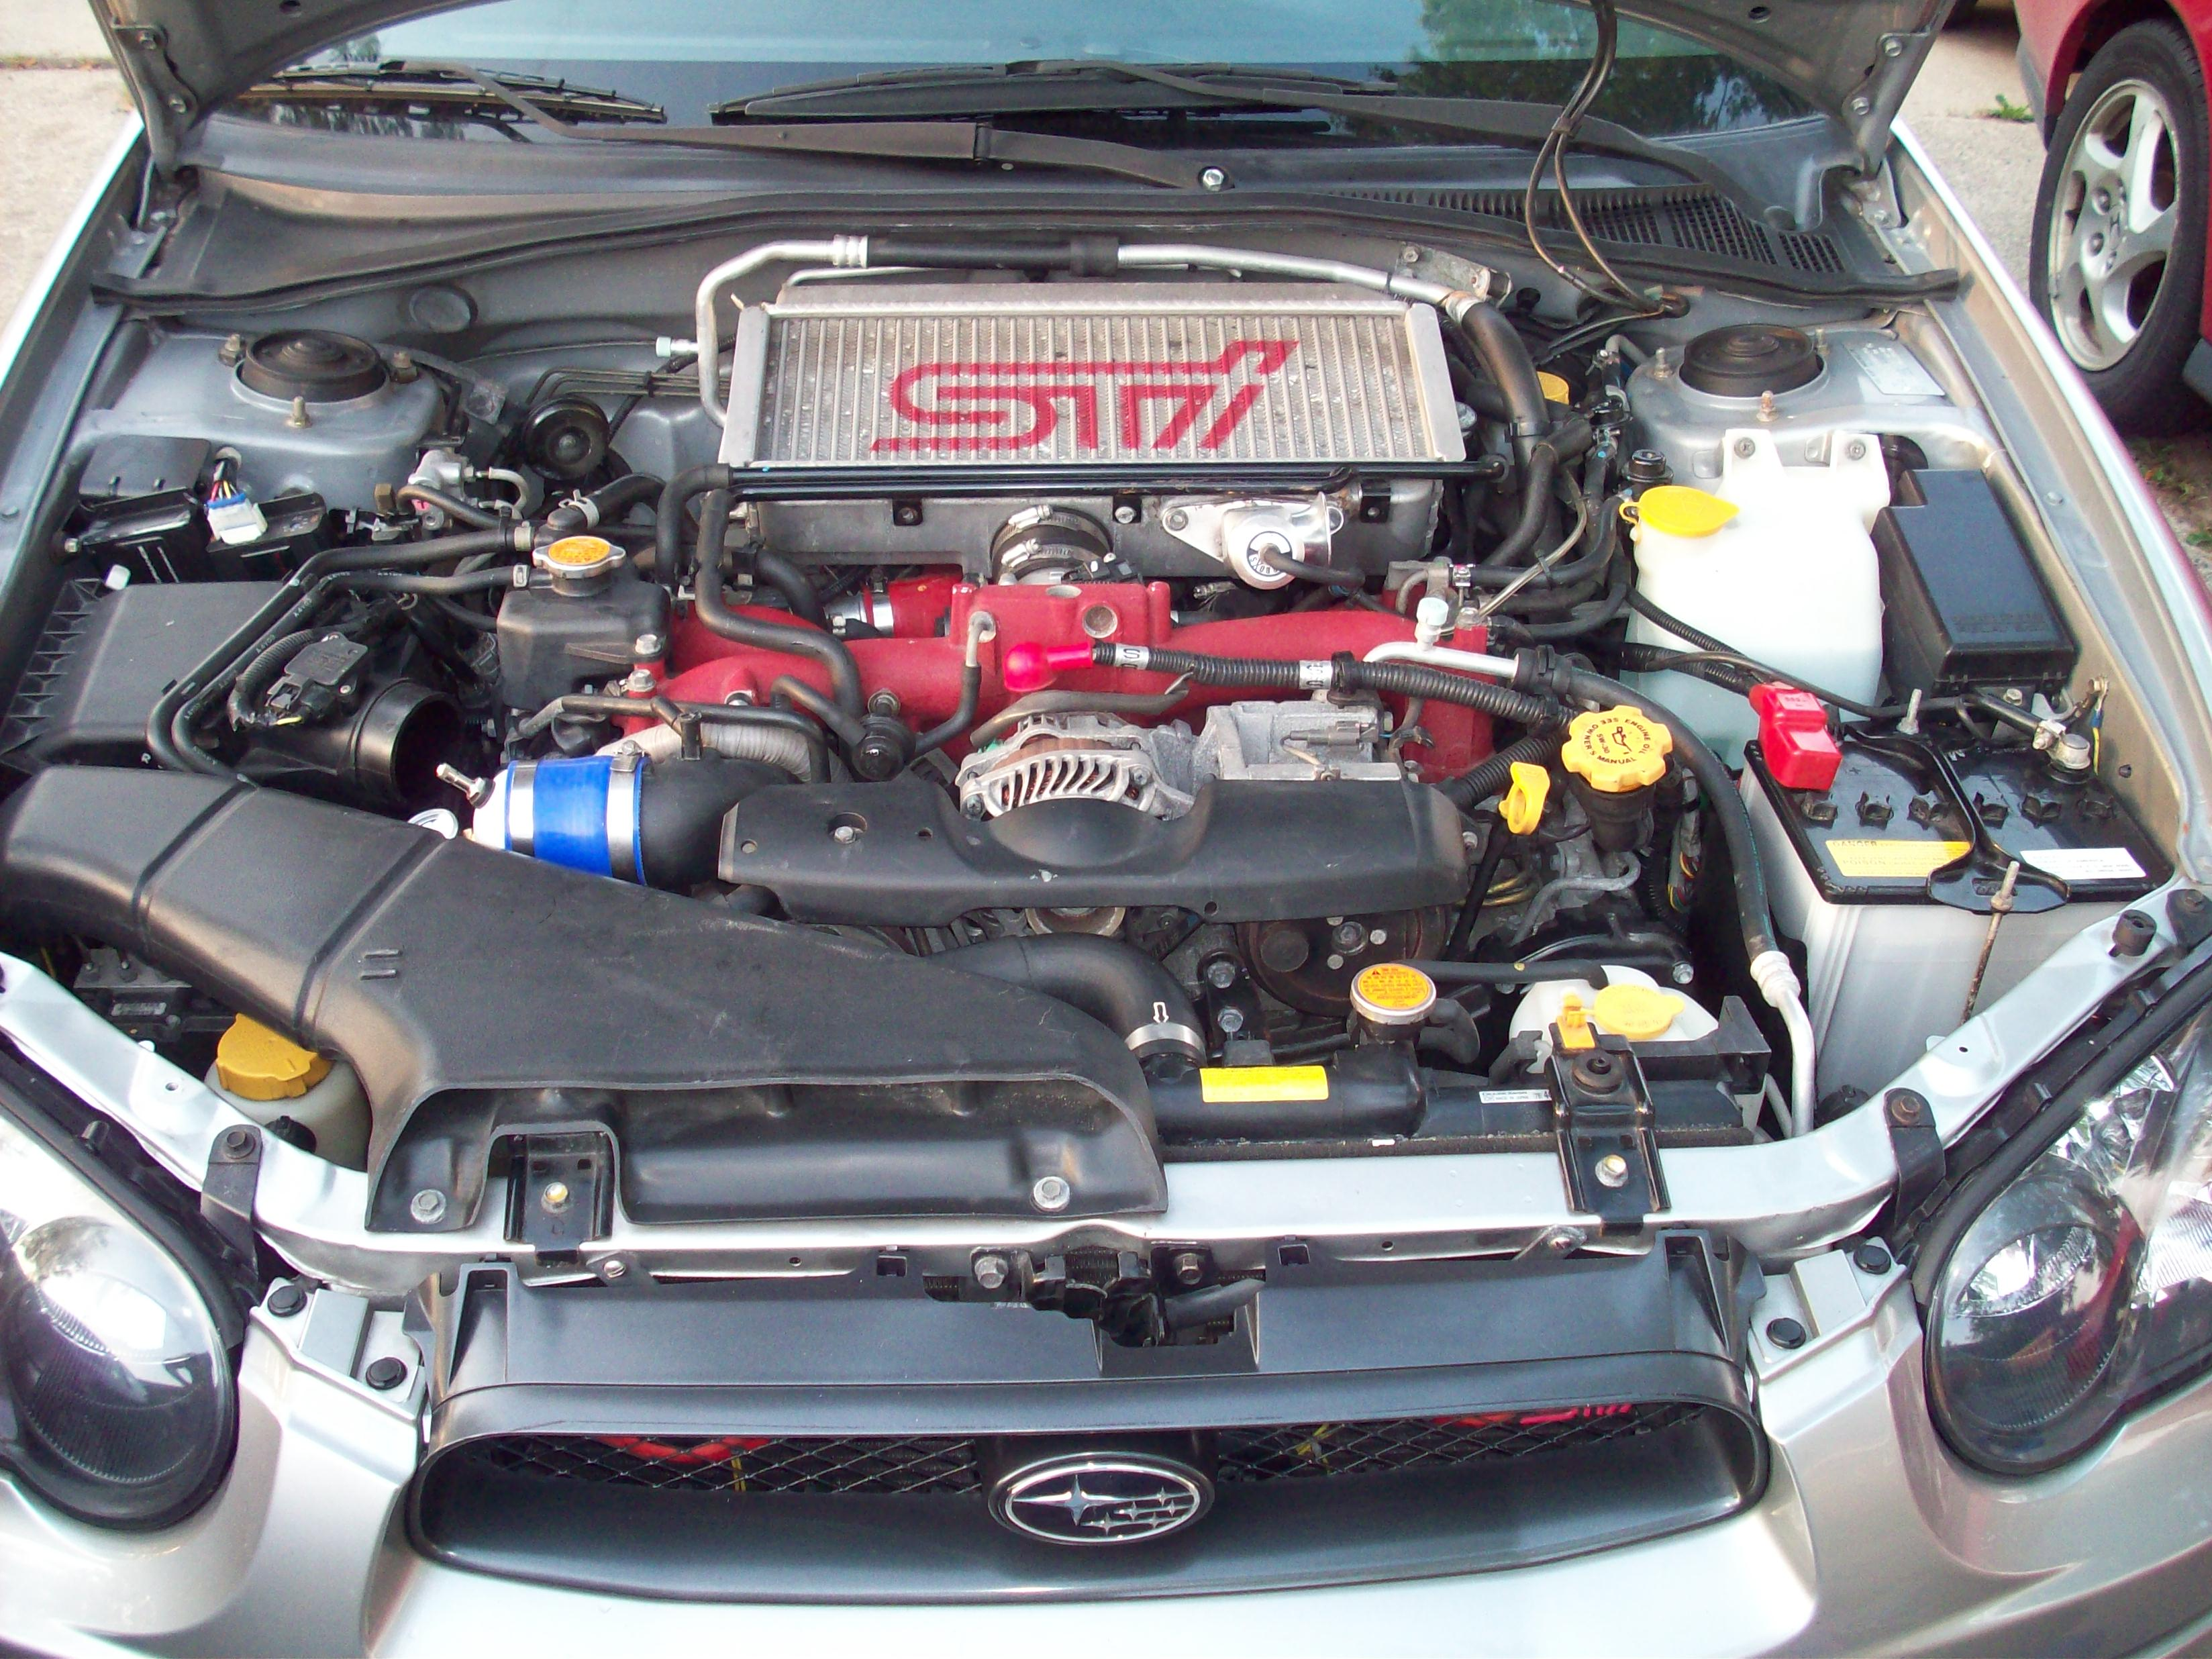 wrg 8096] wrx engine diagram 2004 Ford Mustang Engine Diagram 2004 Subaru Impreza Wrx Engine Diagram #15